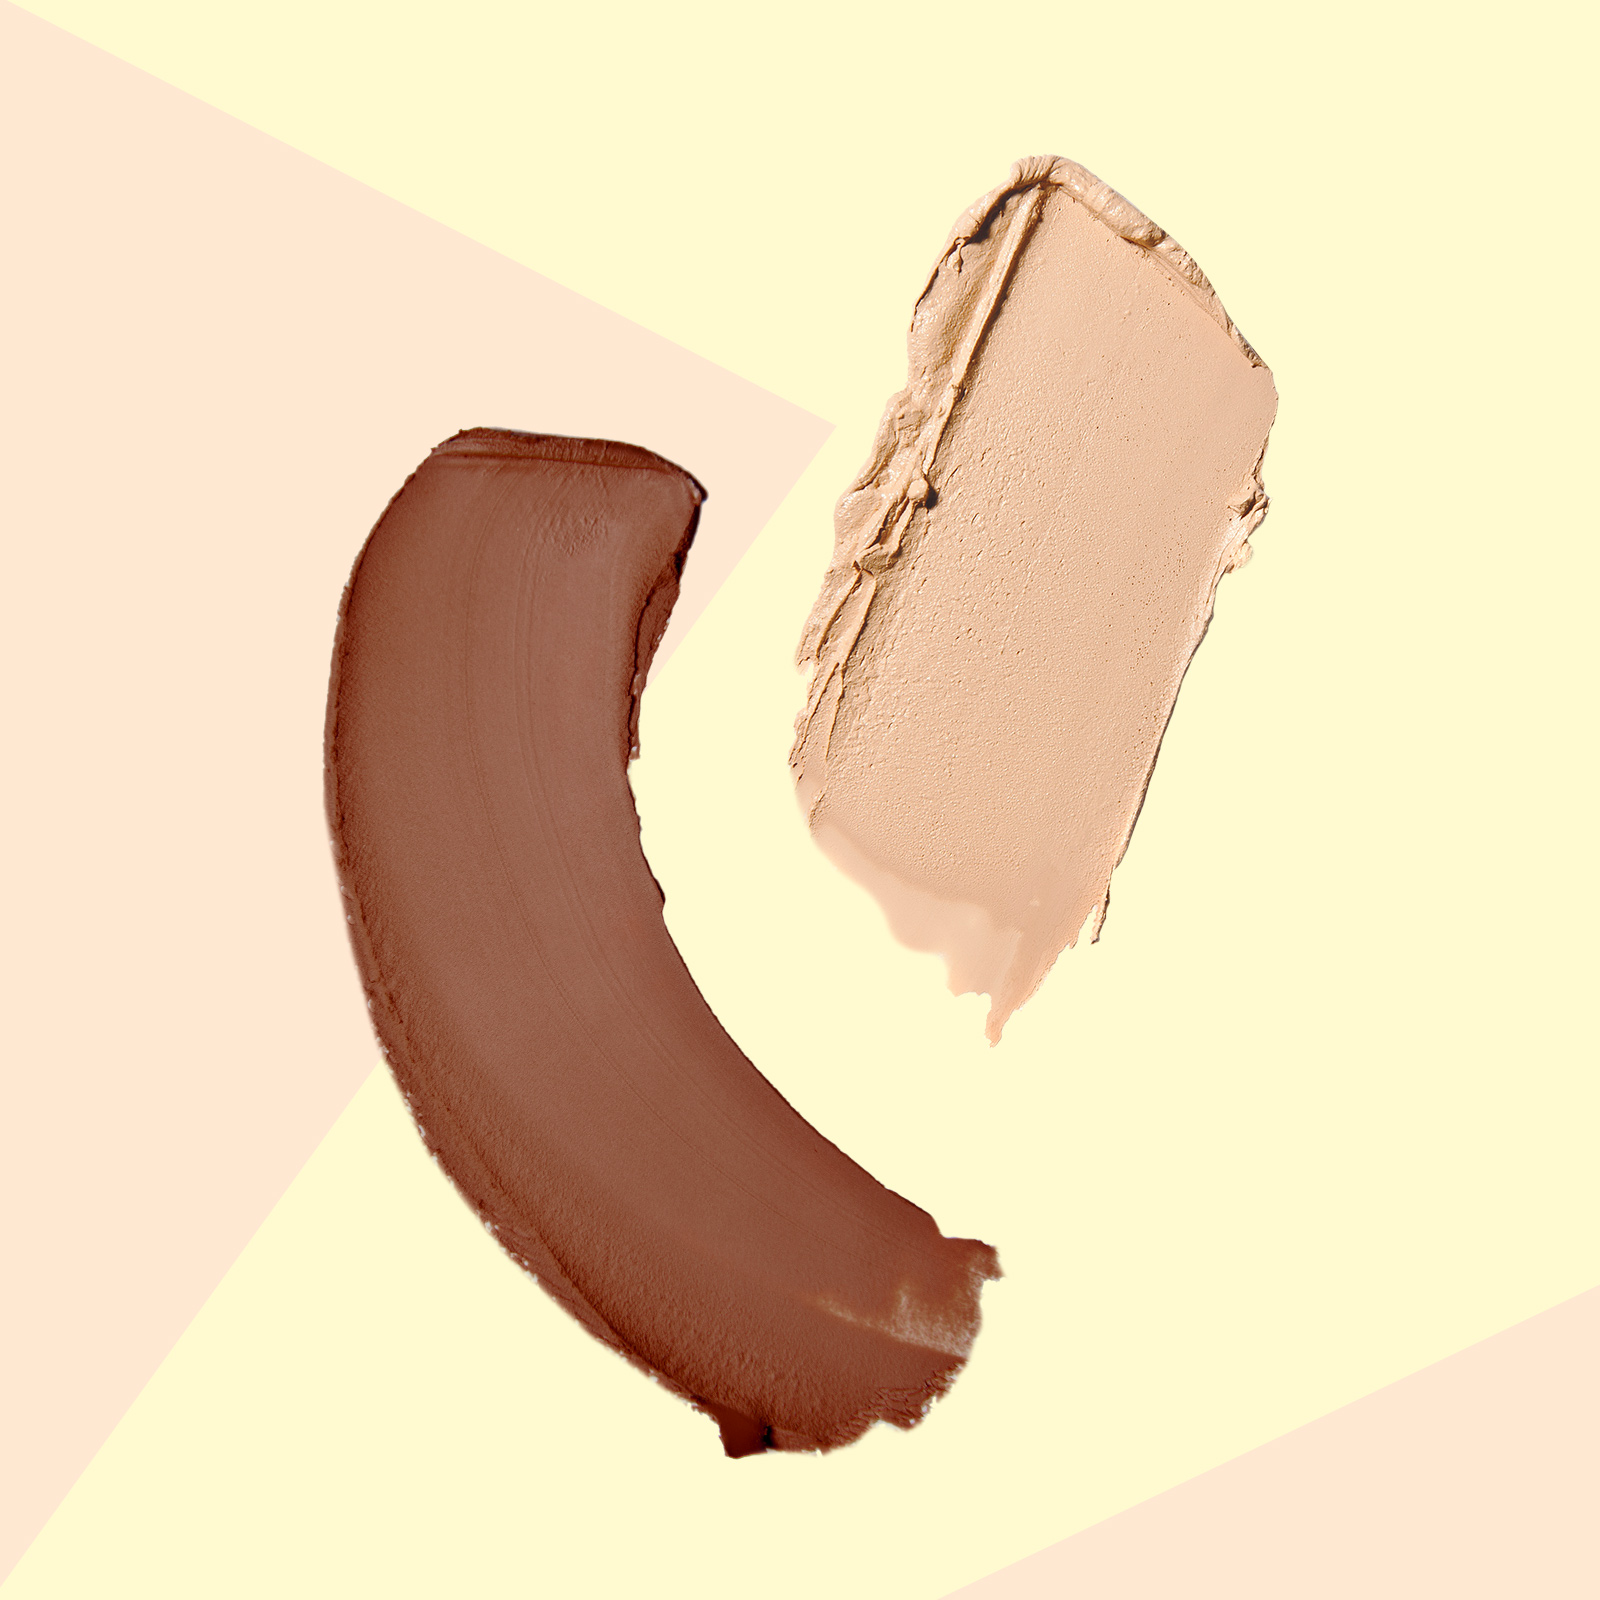 Cystic Acne Concealers - Lead